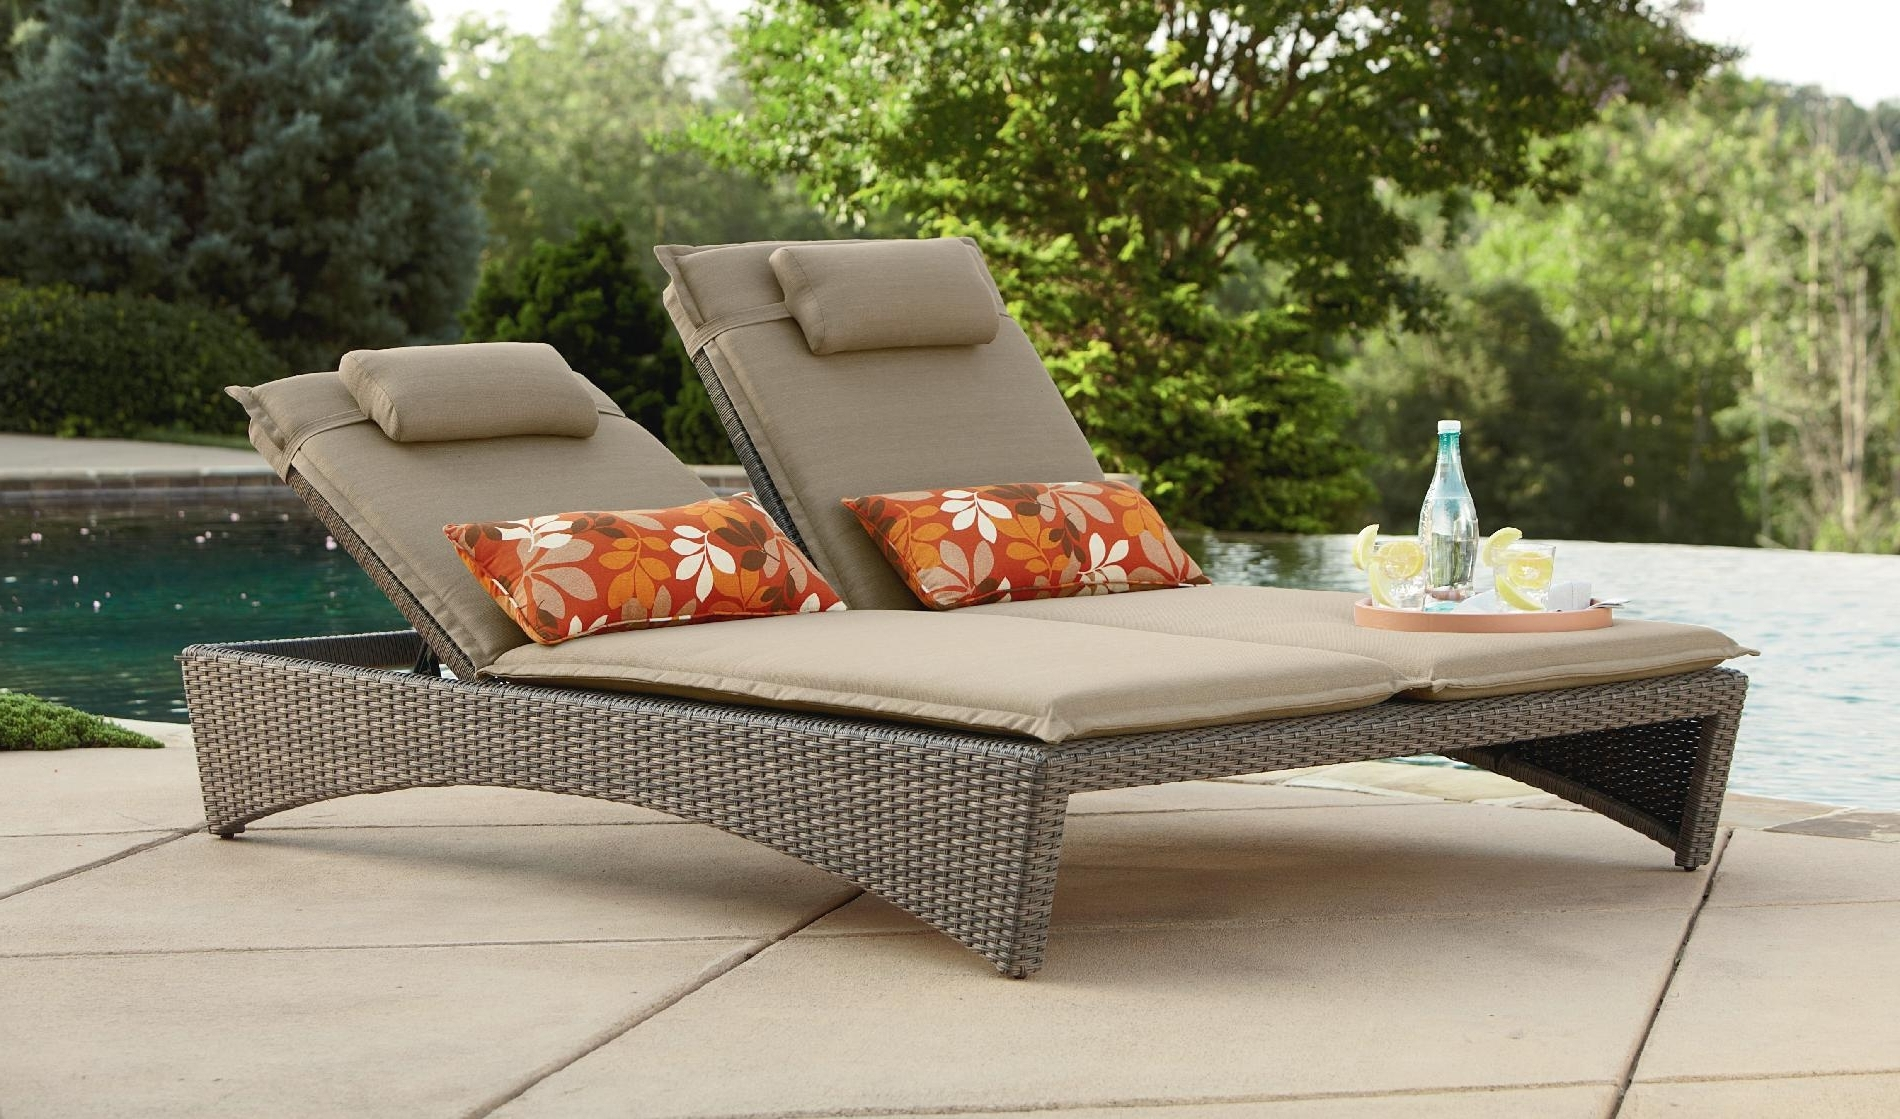 Chaise Lounge Chairs For Poolside For Most Recent Best Lounge Chair For Pool • Lounge Chairs Ideas (View 11 of 15)